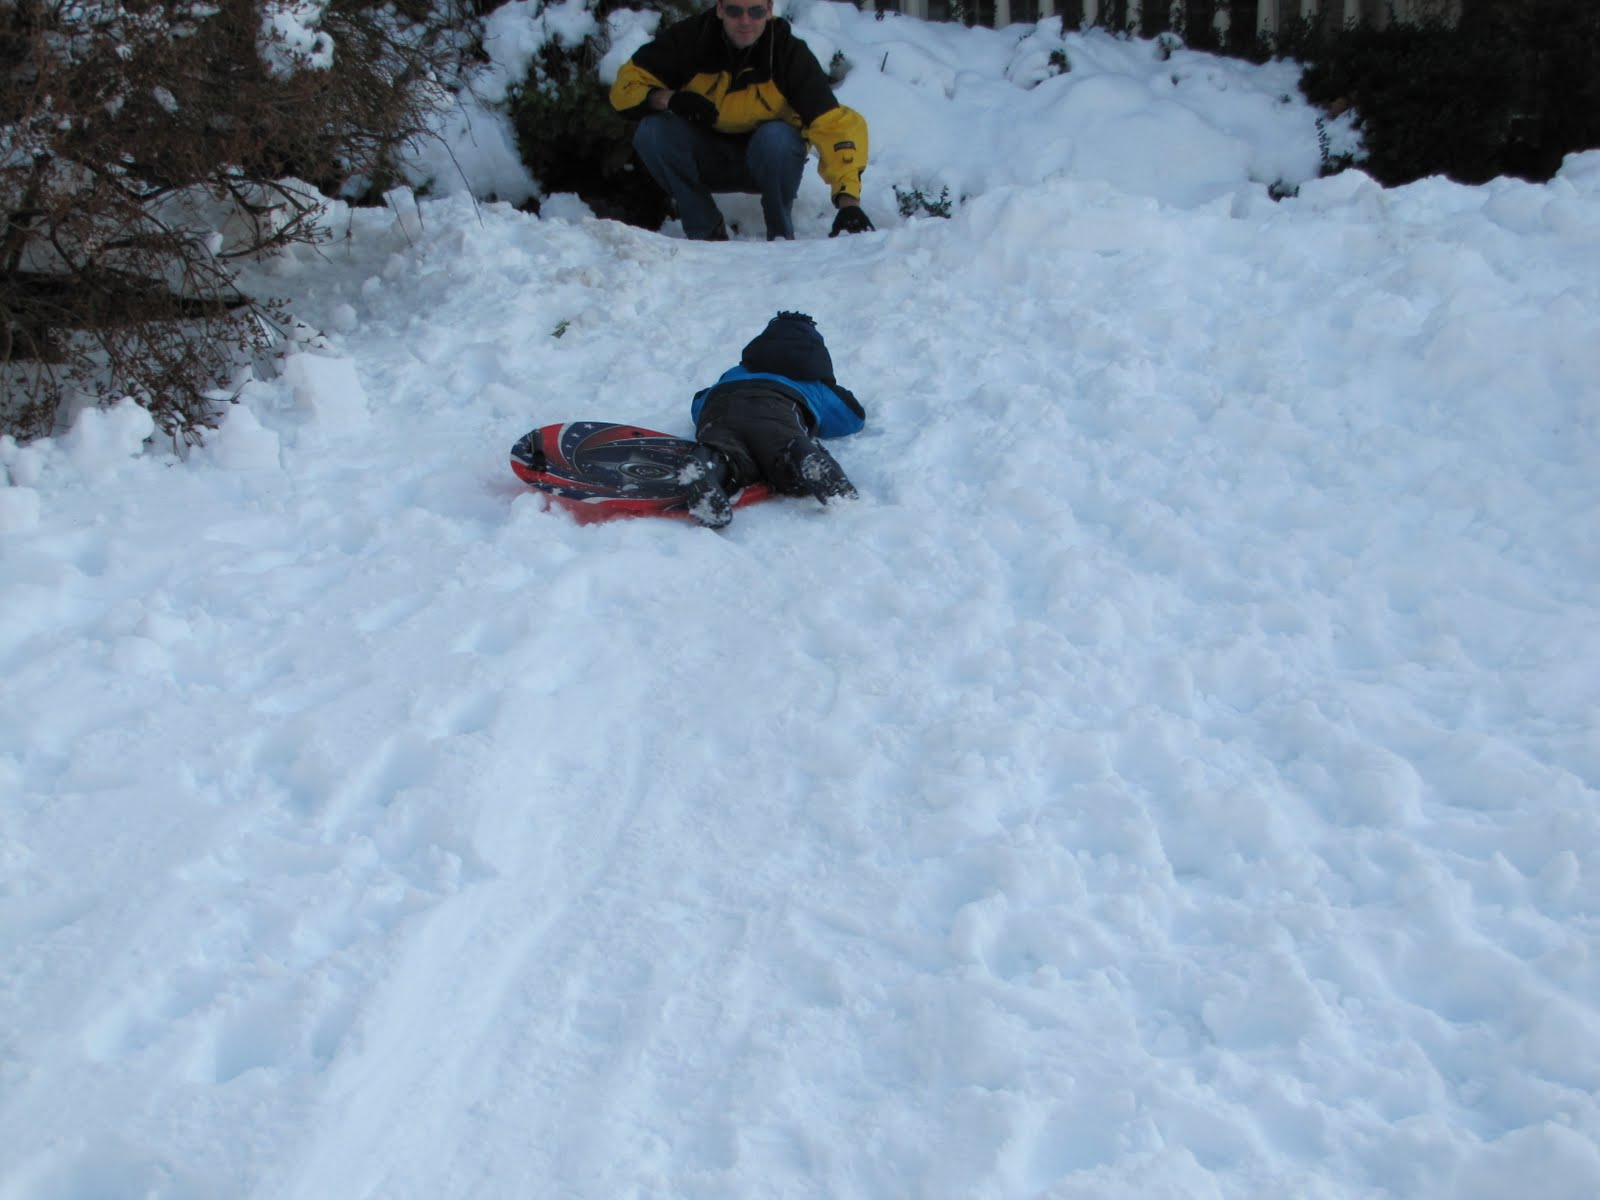 The Gregor Family: January 29th, 2011- More sledding and